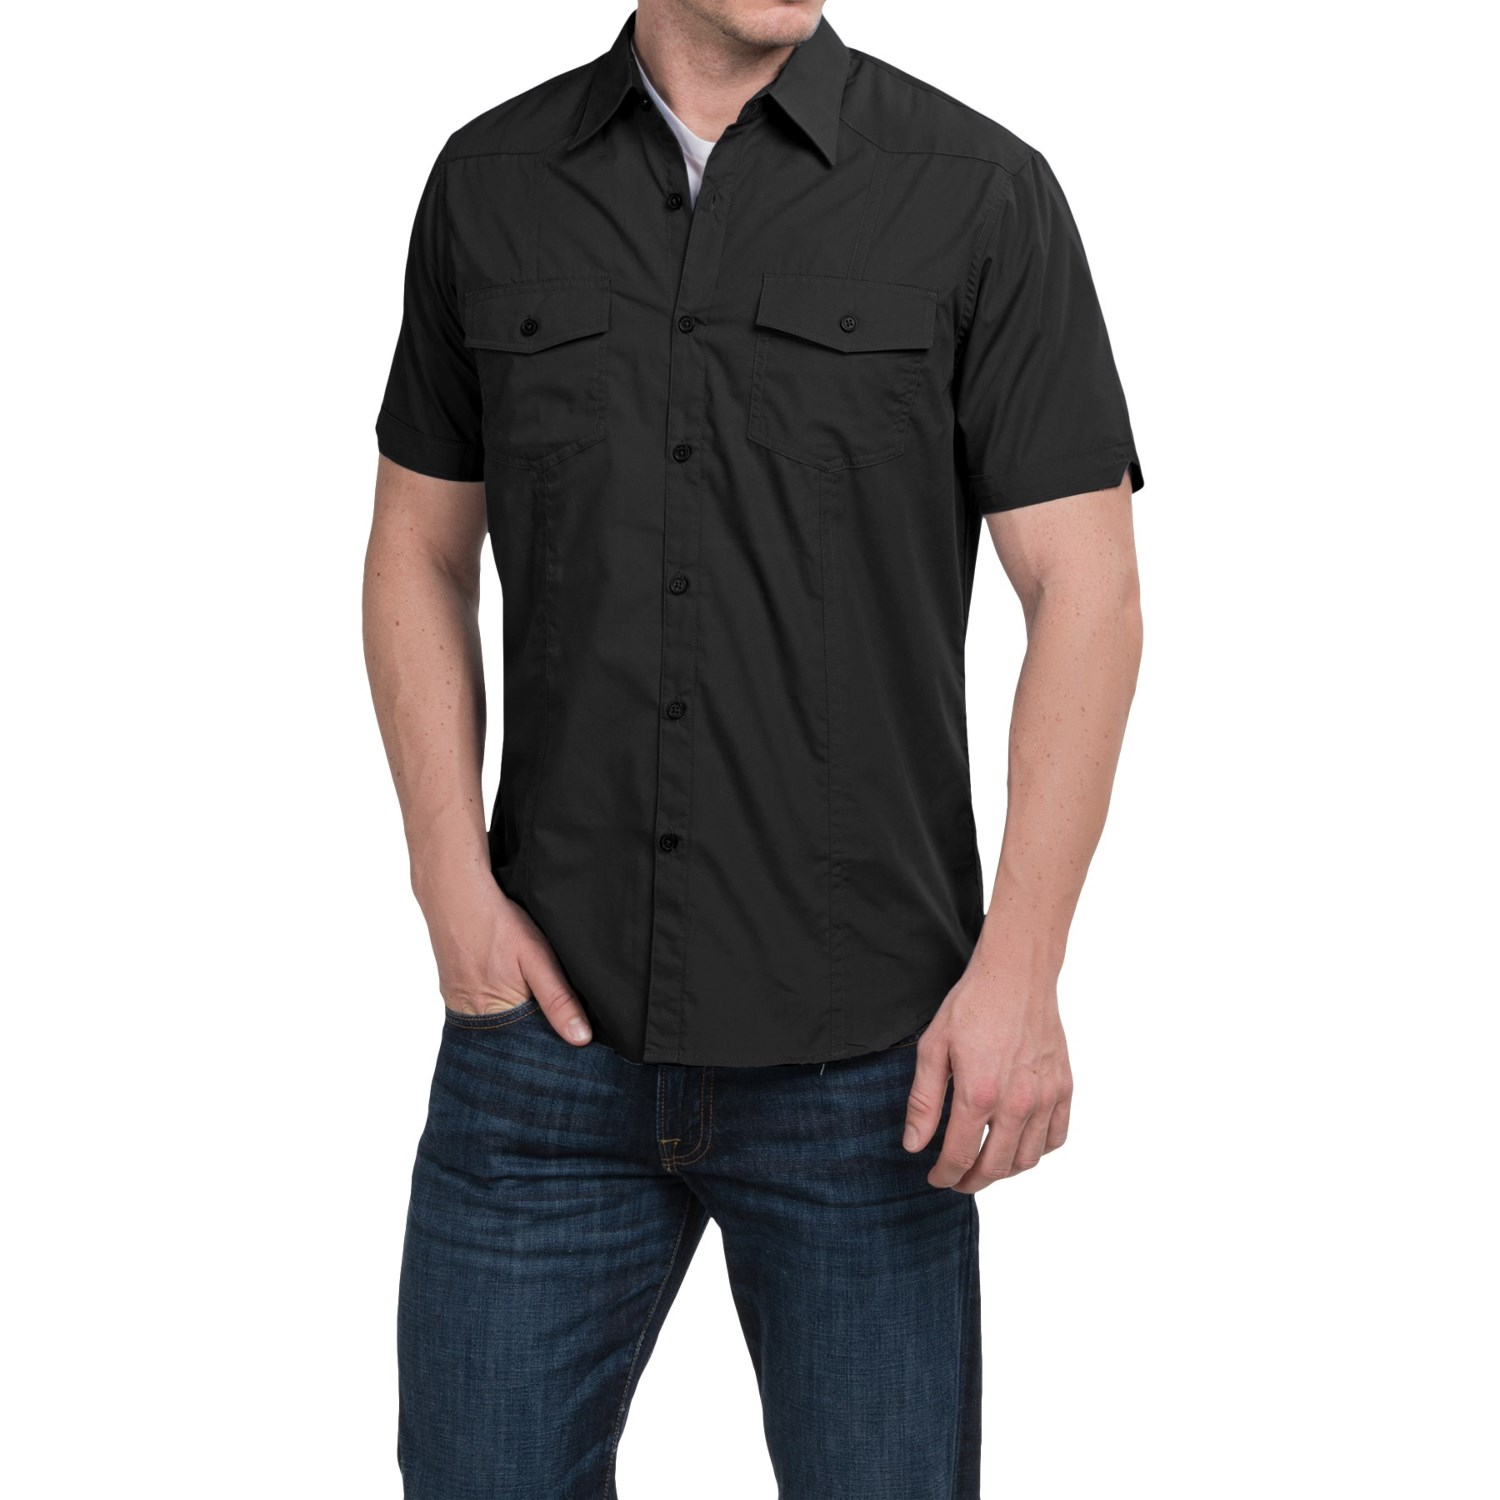 Cultura levi shirt for men save 60 for Levi s short sleeve shirt